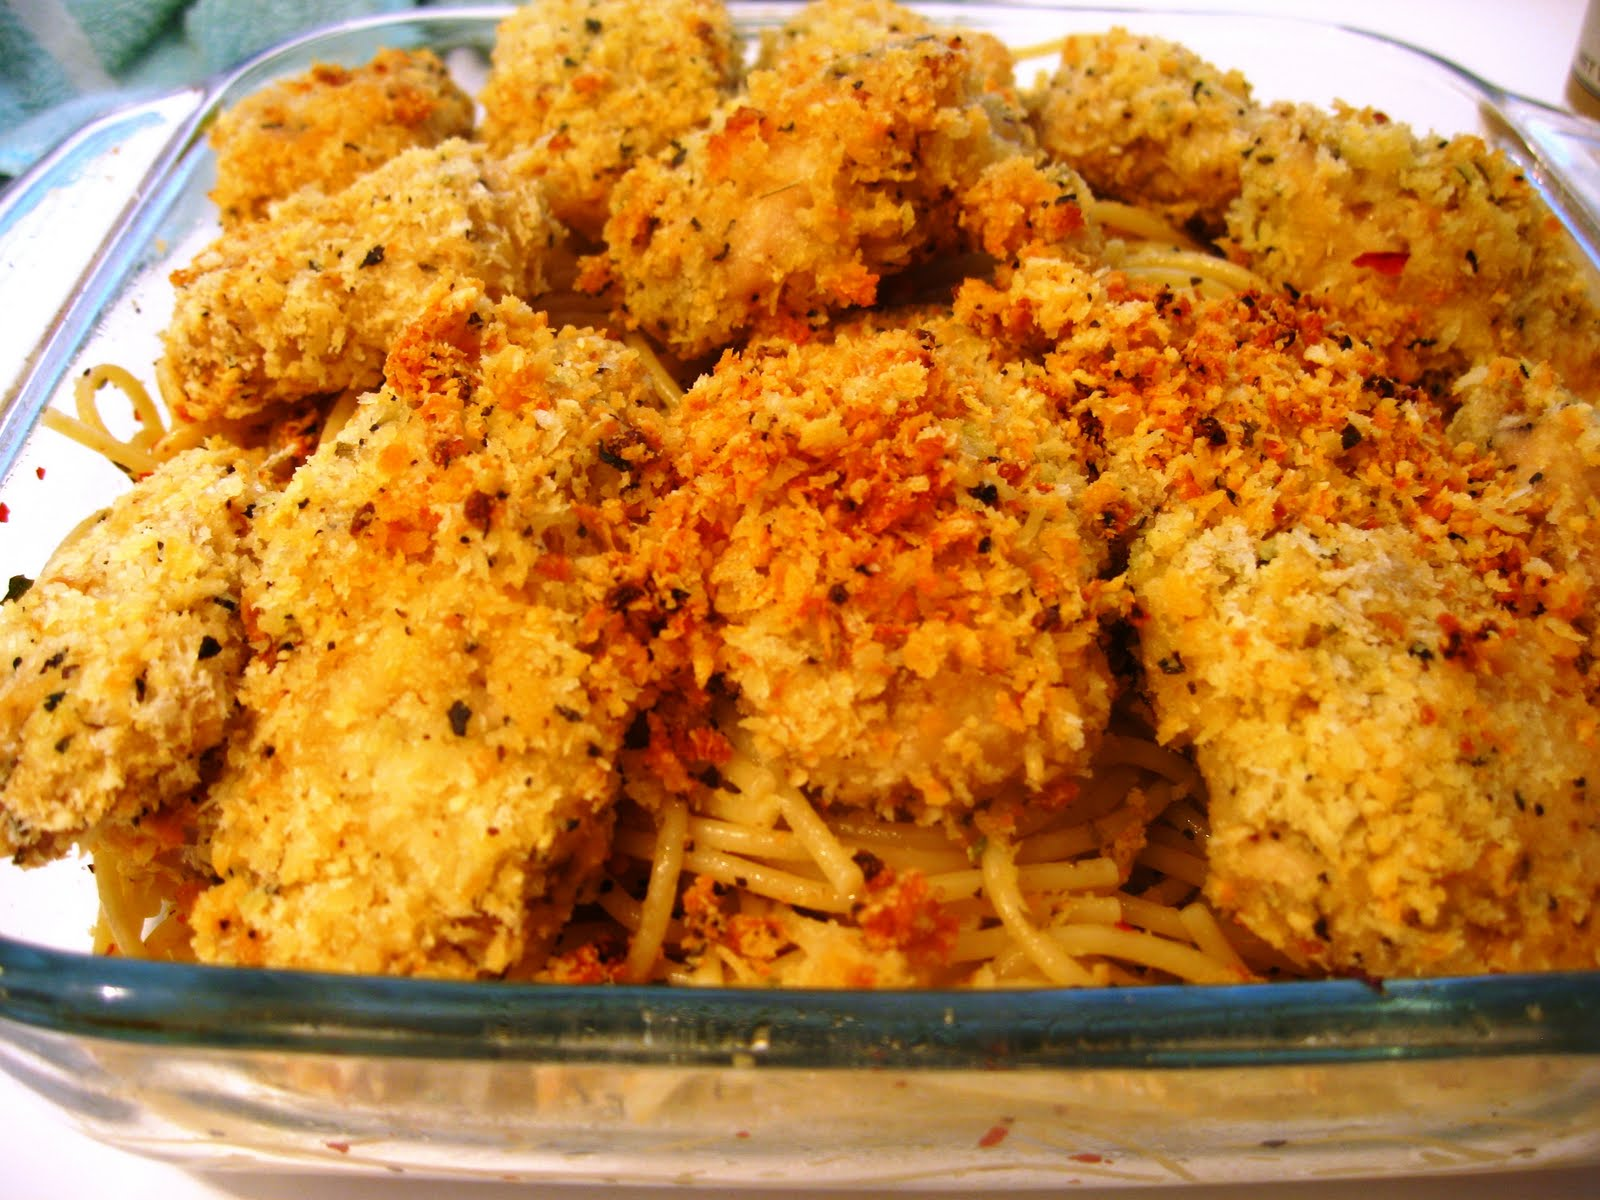 Spaghetti with Baked Garlic Parmesan Chicken | Audrey's Cooking Lab